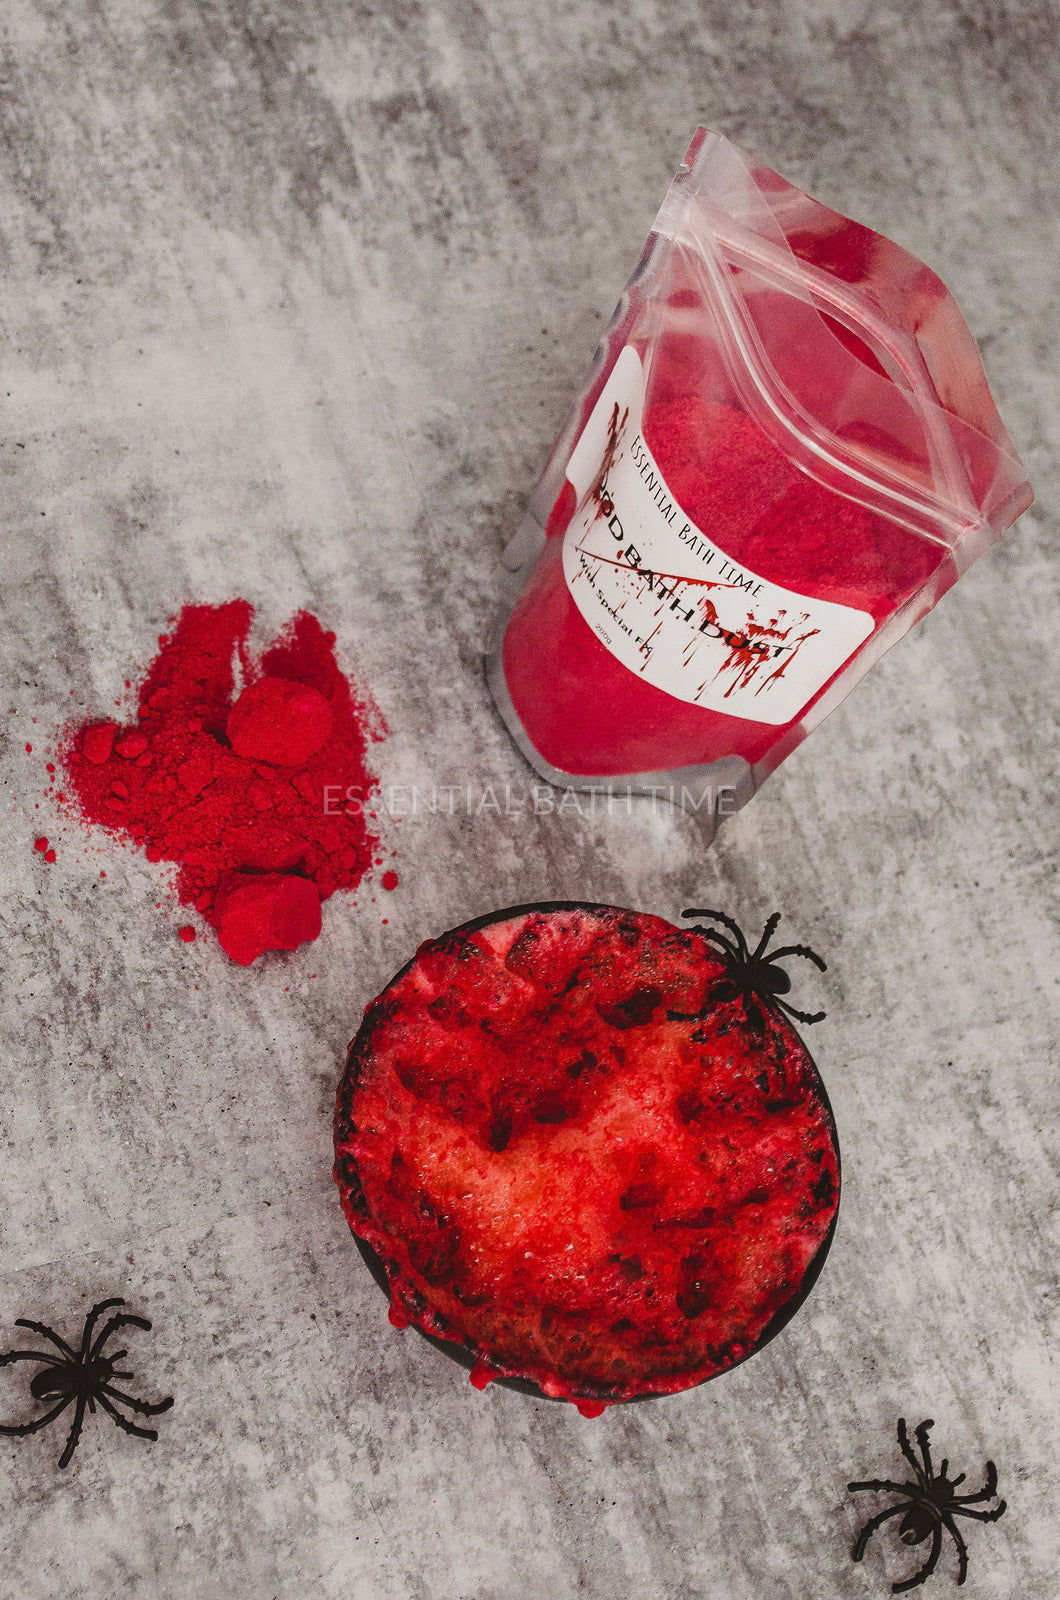 Blood Bath dust Special FXHalloween bath bombEssential bath time